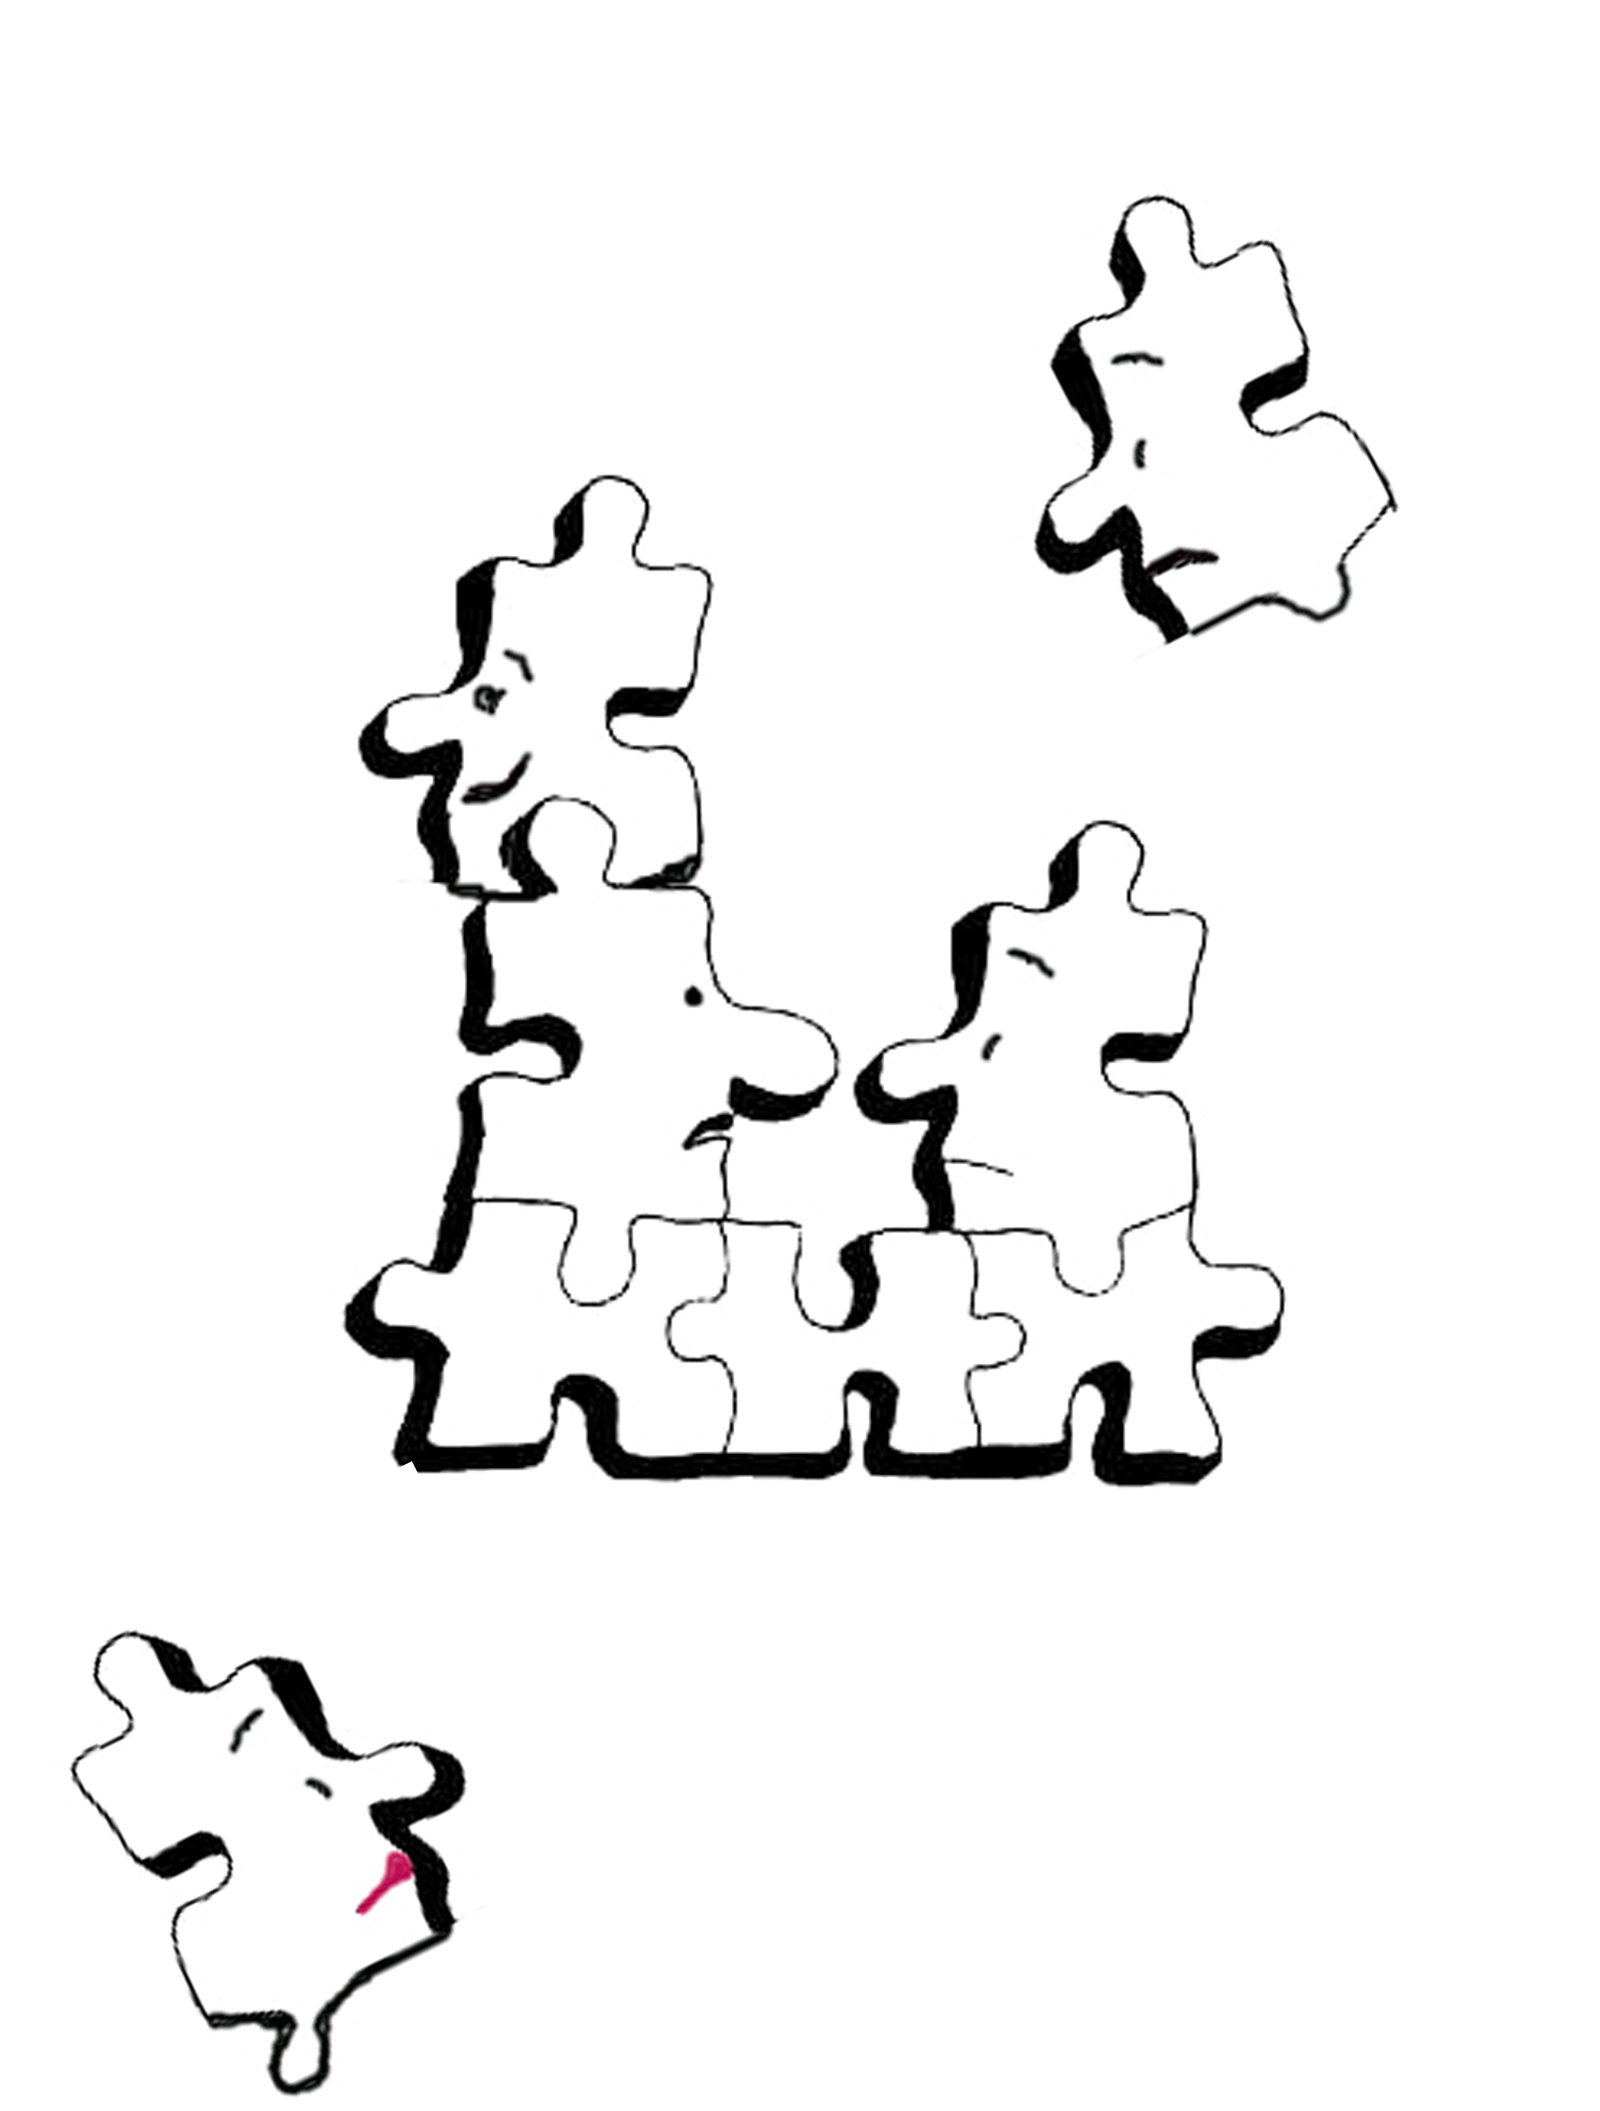 Free Cartoon Puzzle Pieces Download Free Clip Art Free